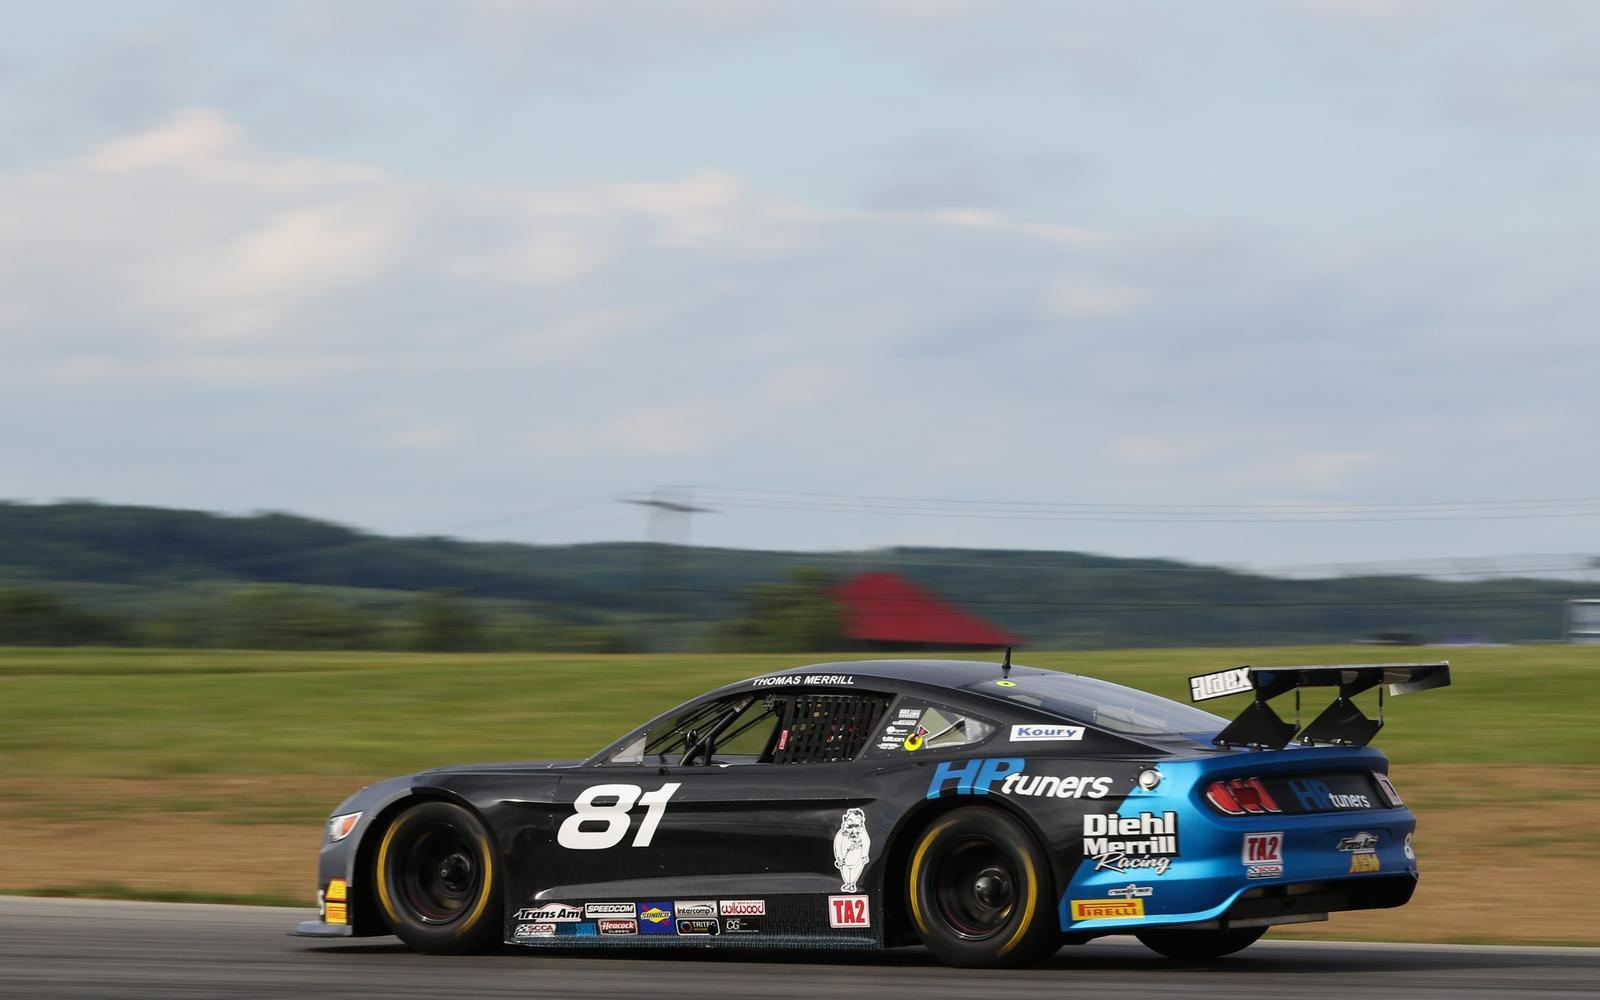 NEWS FLASH: Time runs out, Merrill takes TA2 victory at Mid-Ohio